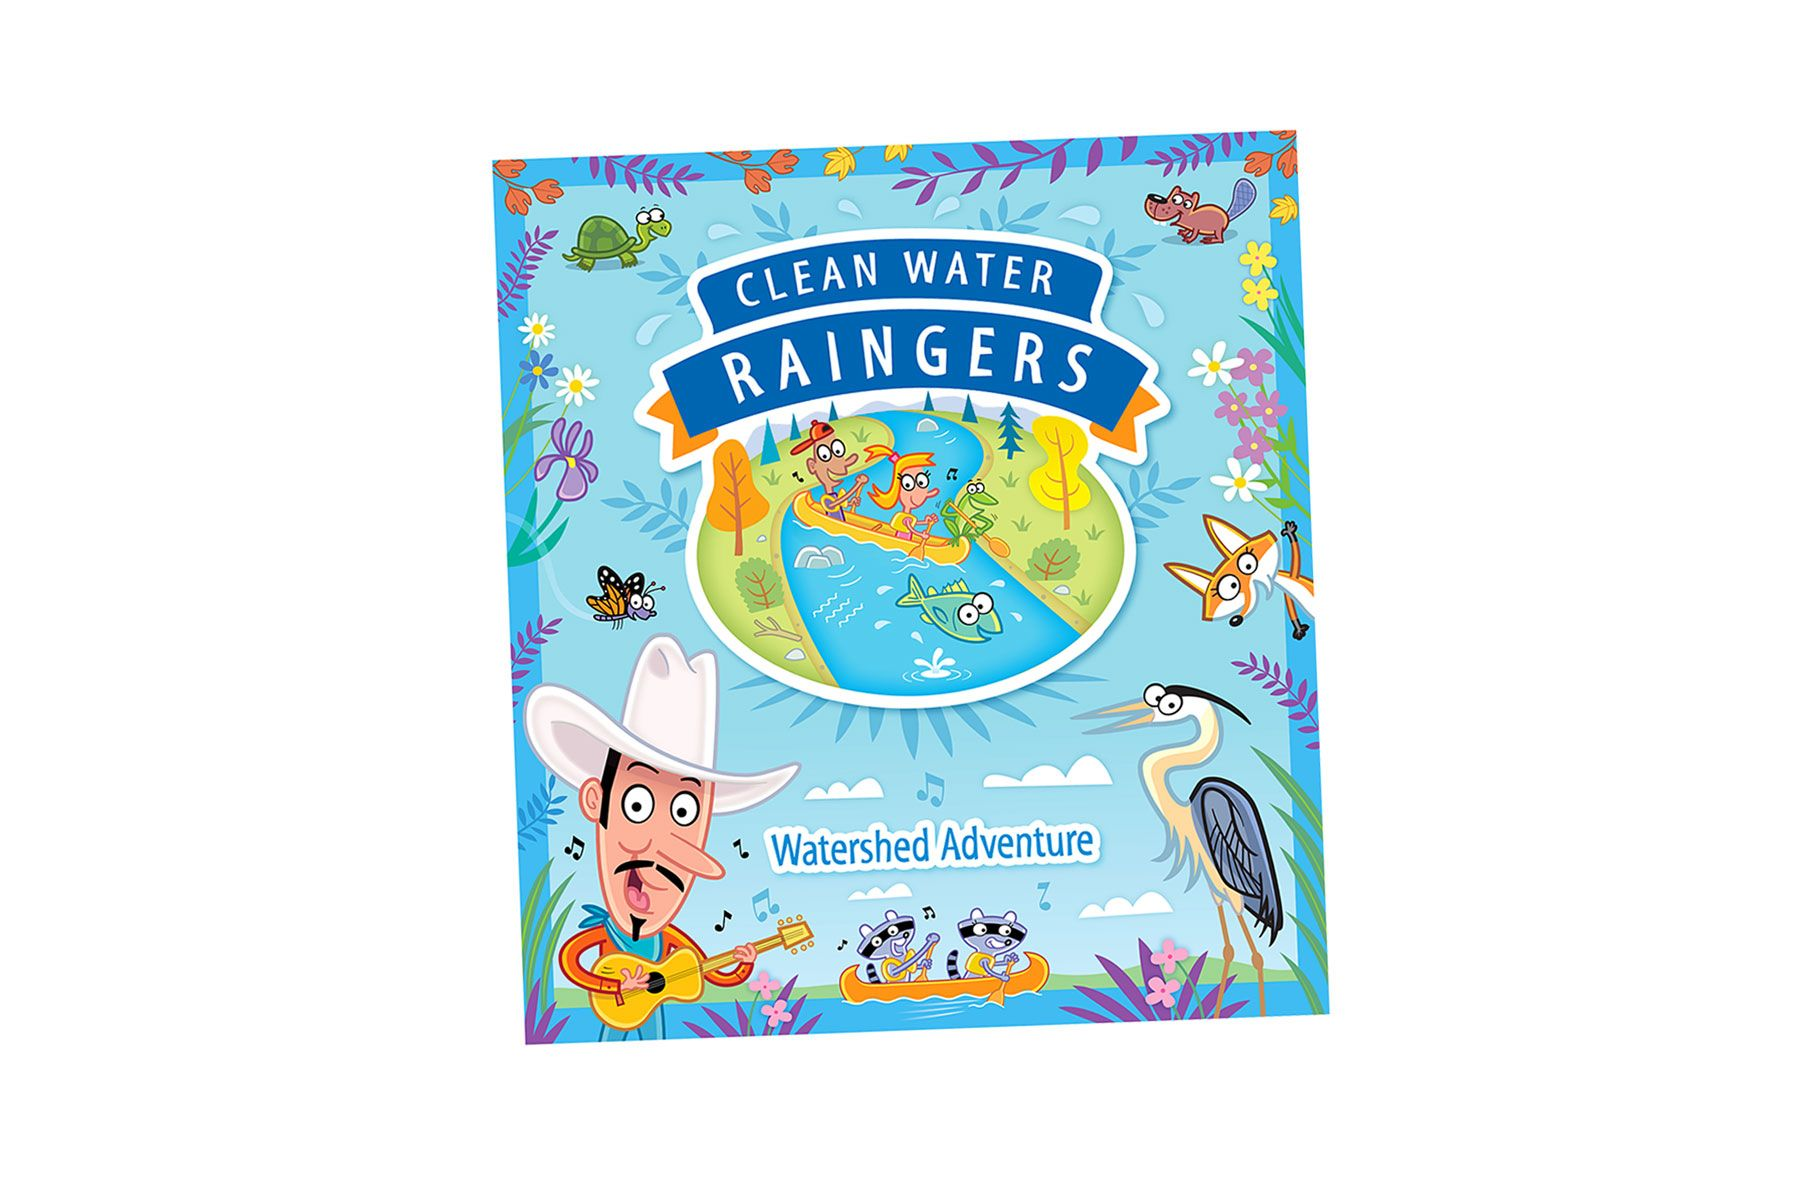 Clean Water Raingers